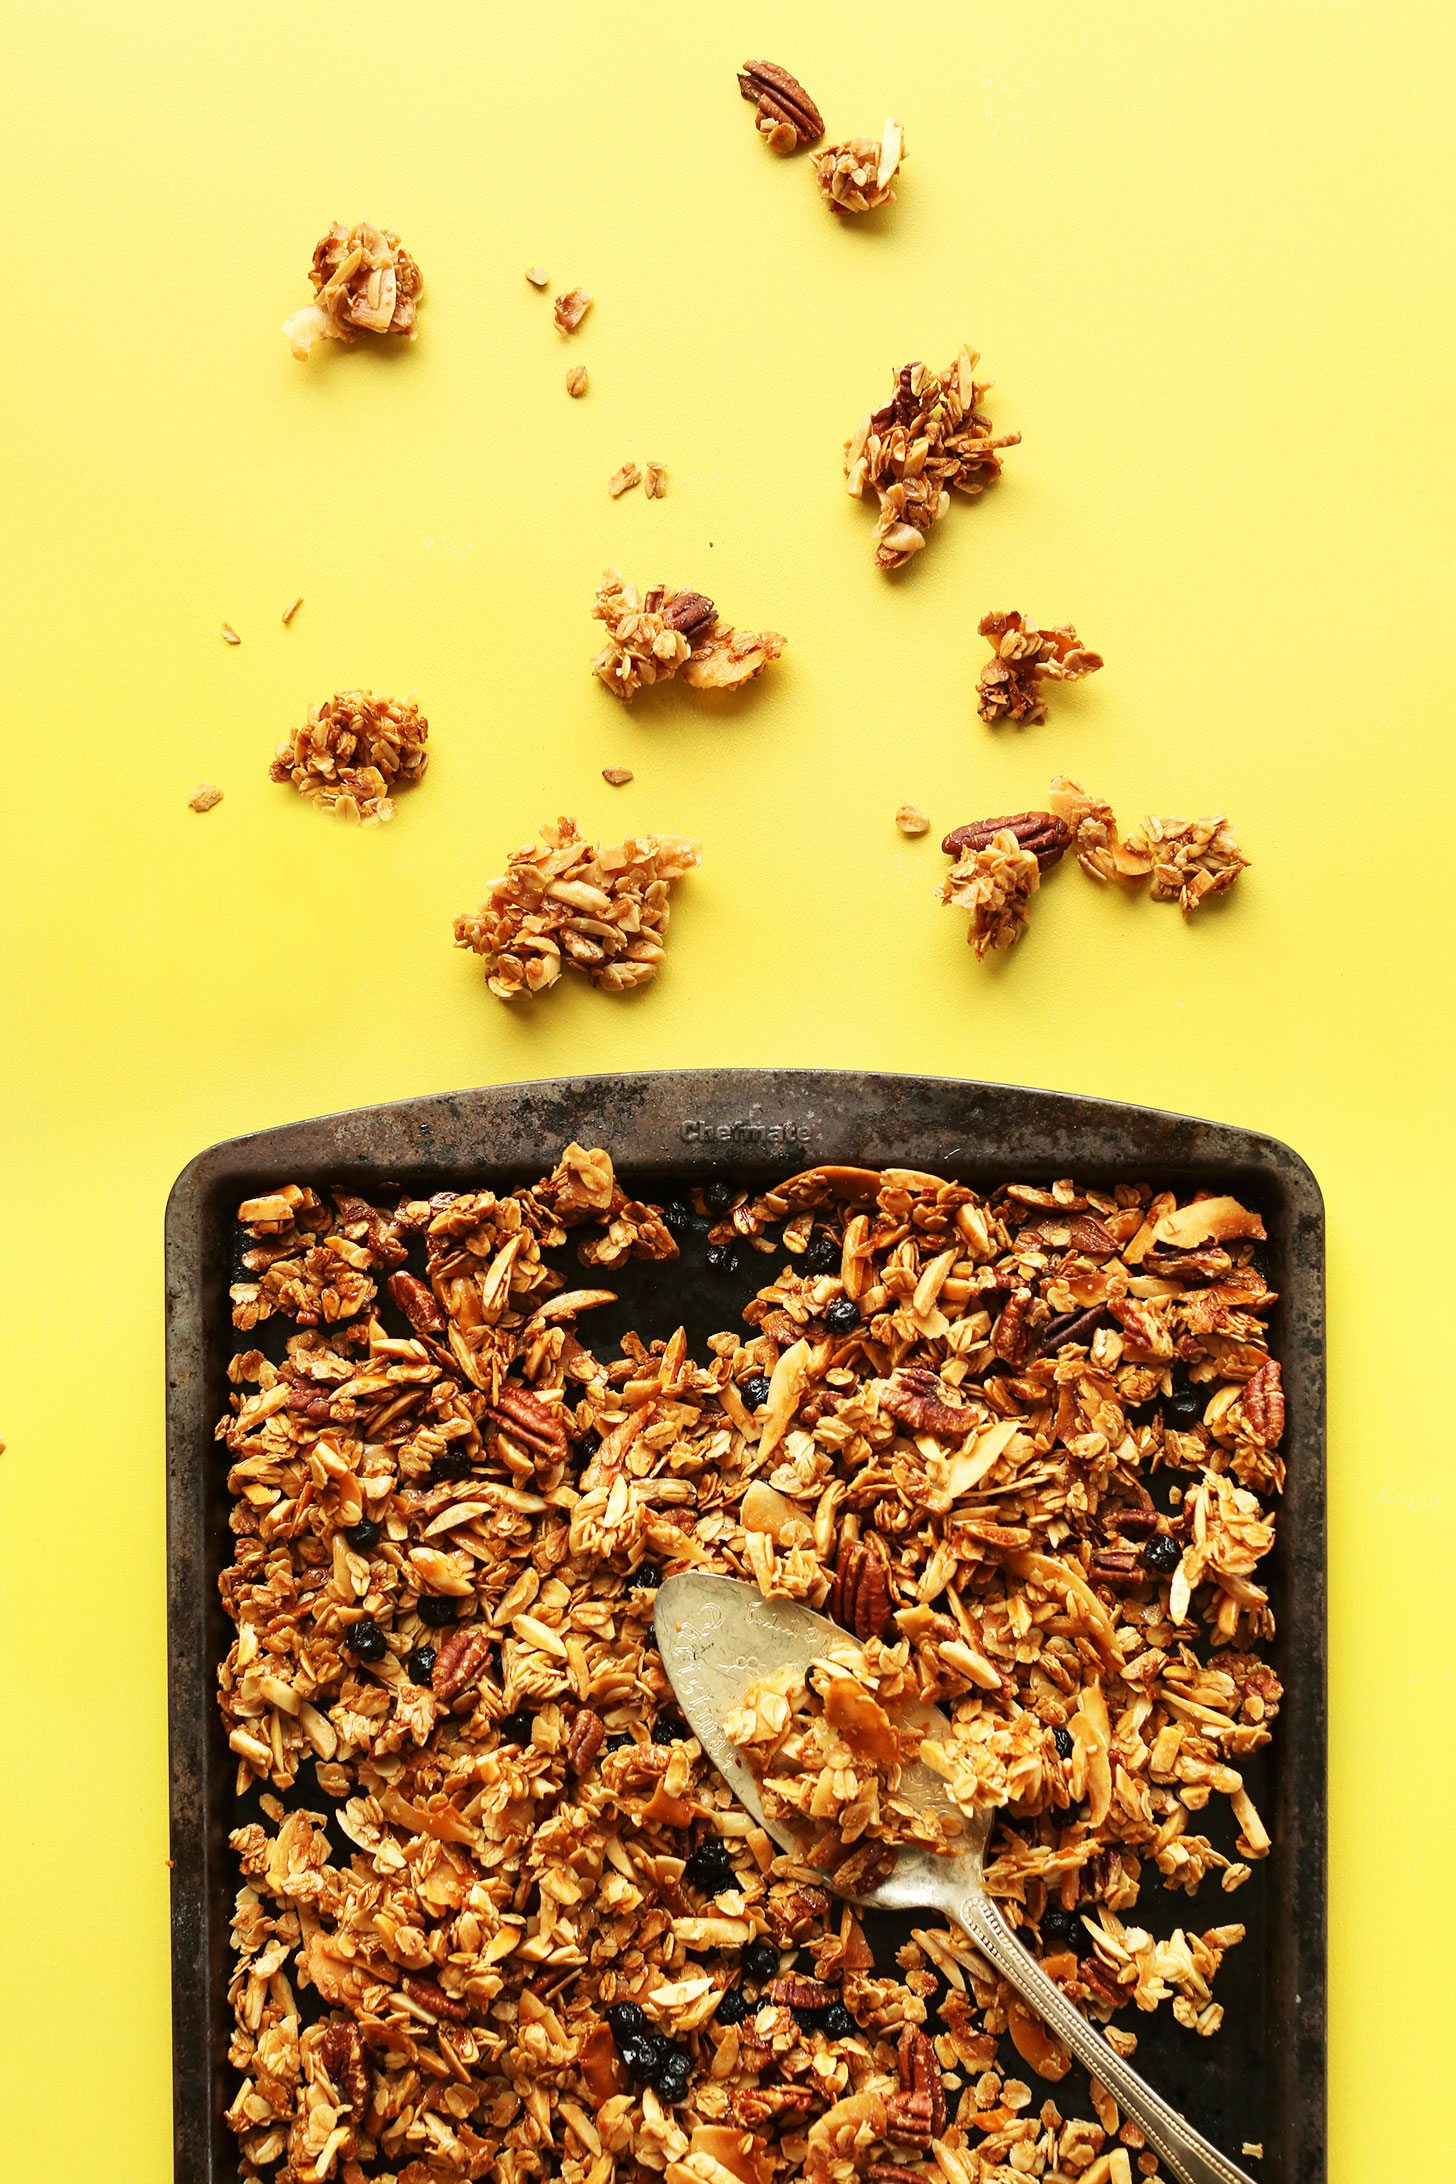 Coconut granola in the baking pan on the yellow background